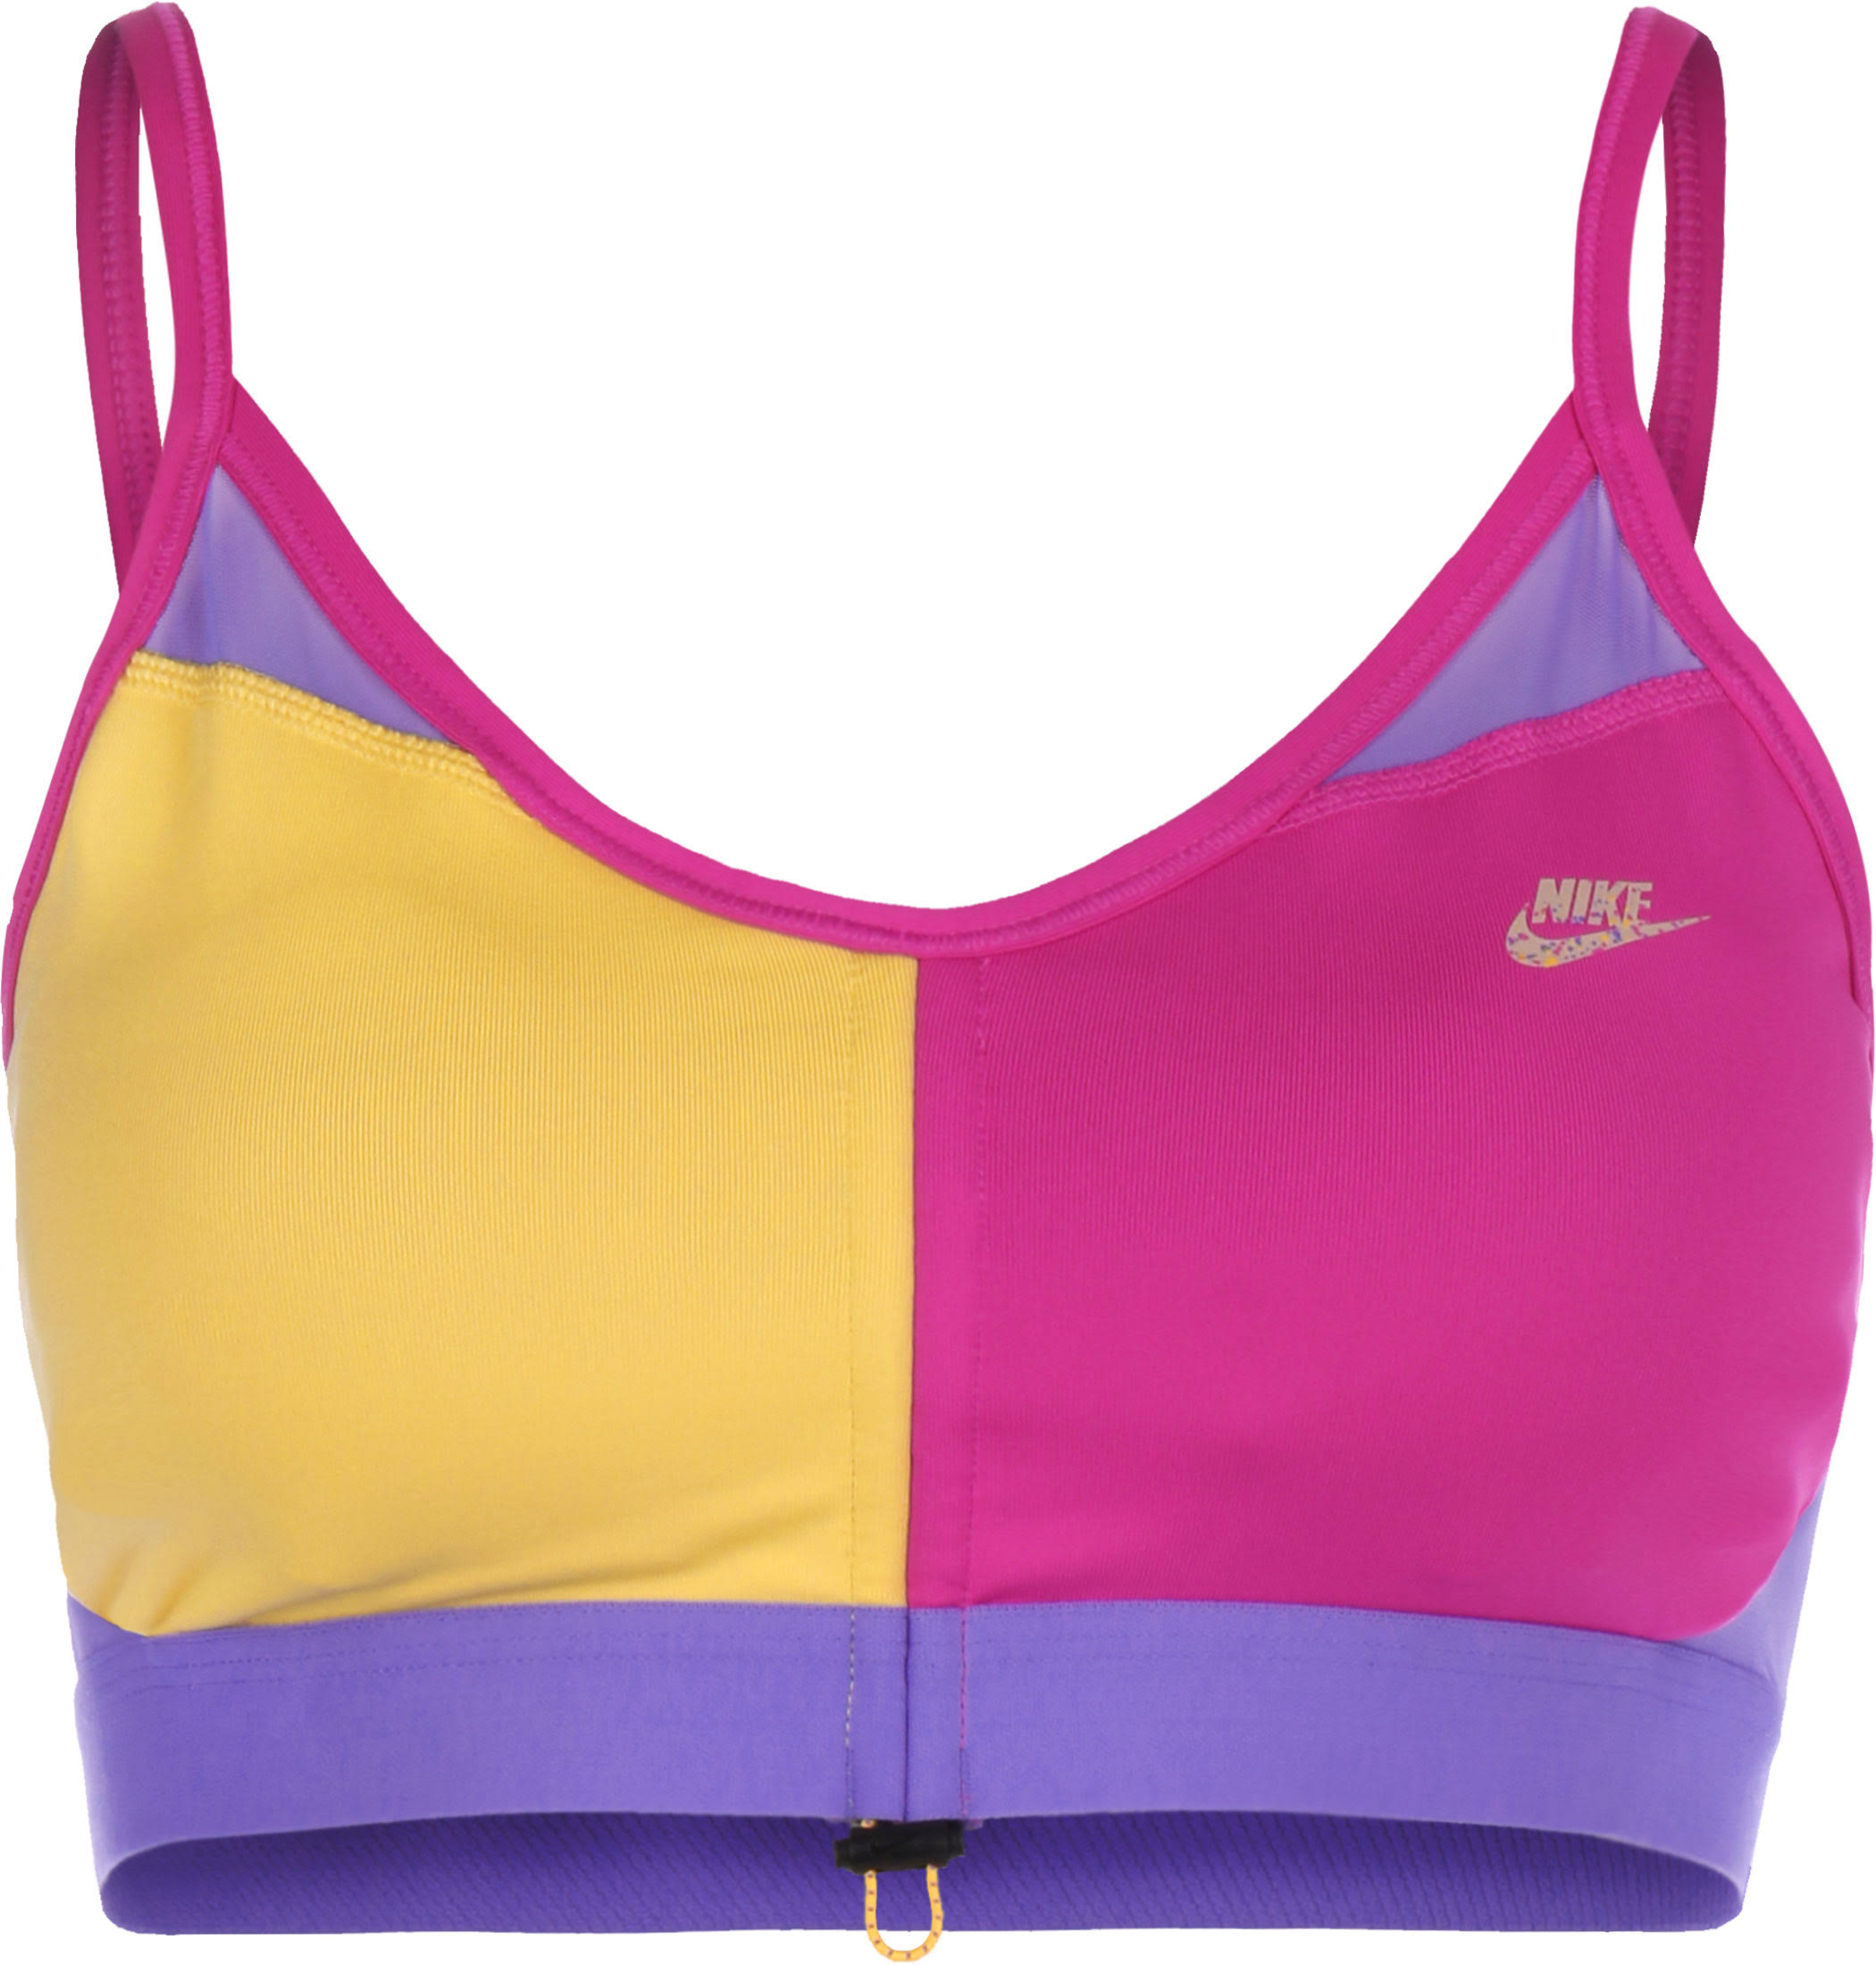 Nike Indy Icon Clash Women's Light-Support Toggle Sports Bra - Pink